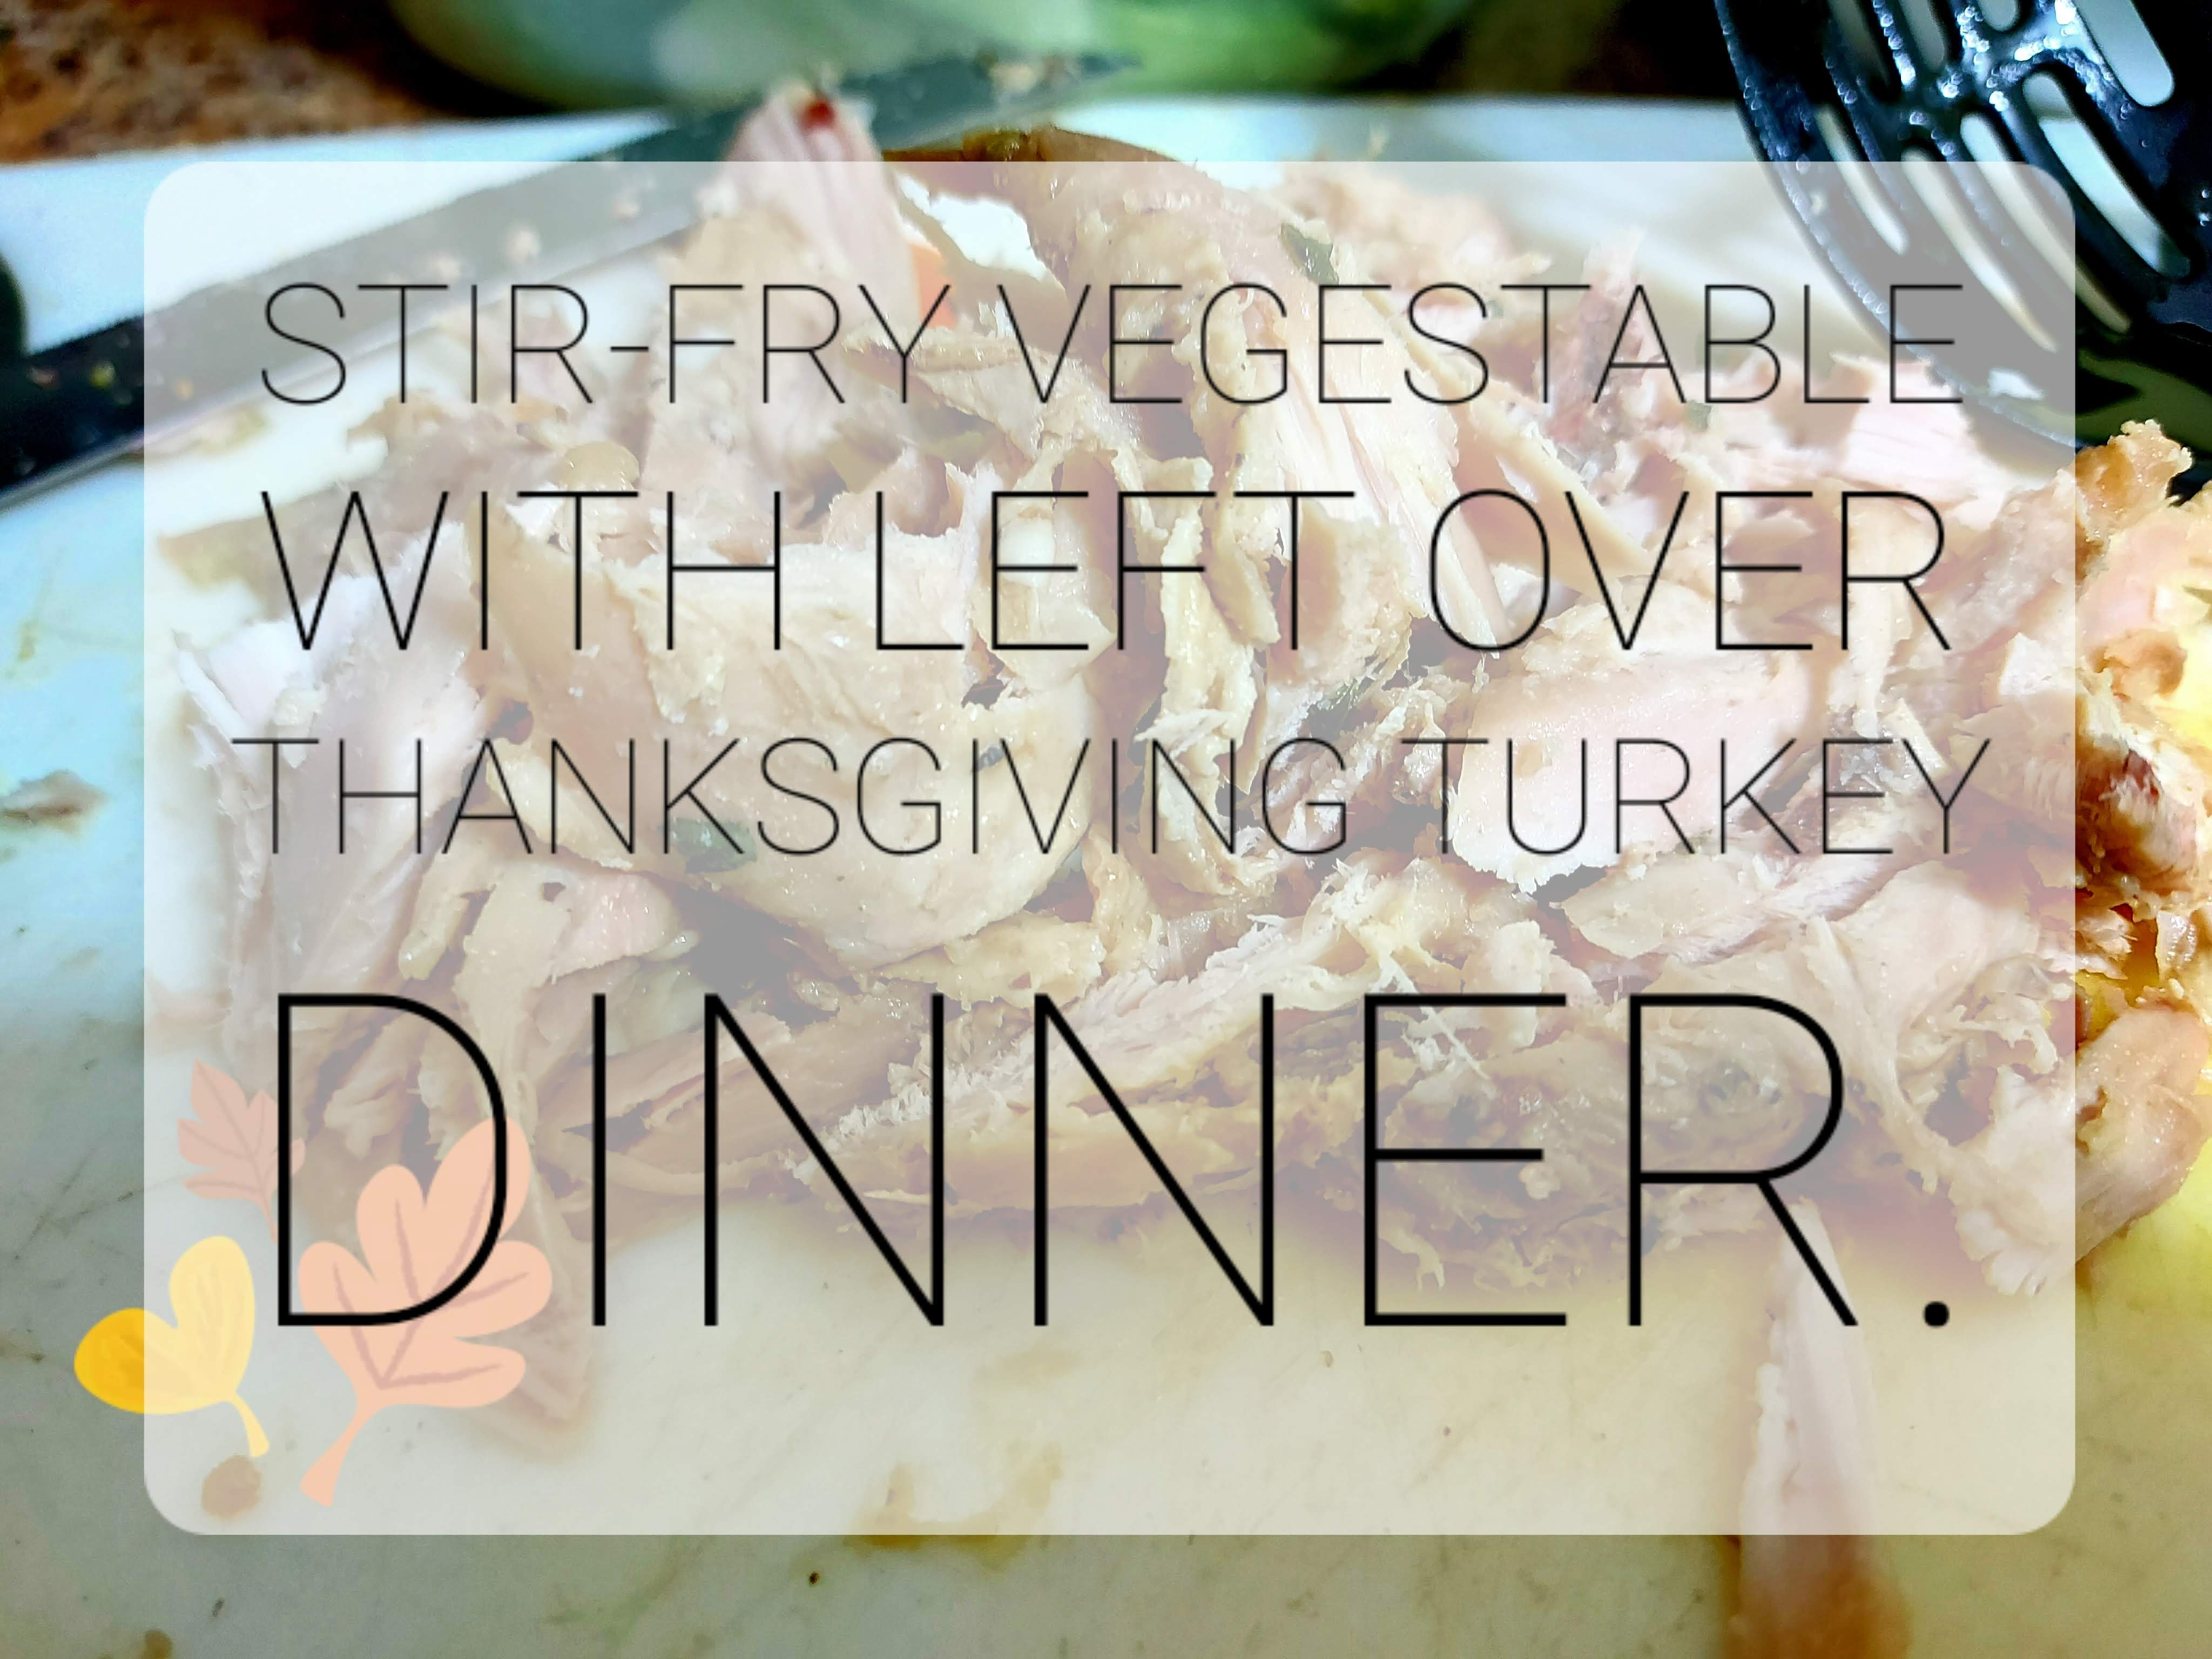 """Hope everyone had a wonderful time Thanksgiving with their family. Any leftover turkey dinner from thanksgiving? Well, we do, yes! So here is the recipe that I created """"Stir-Fry Vegetable's w/Turkey"""". Maybe some of you already have this but this actually that just came up in my mind, LOL!"""